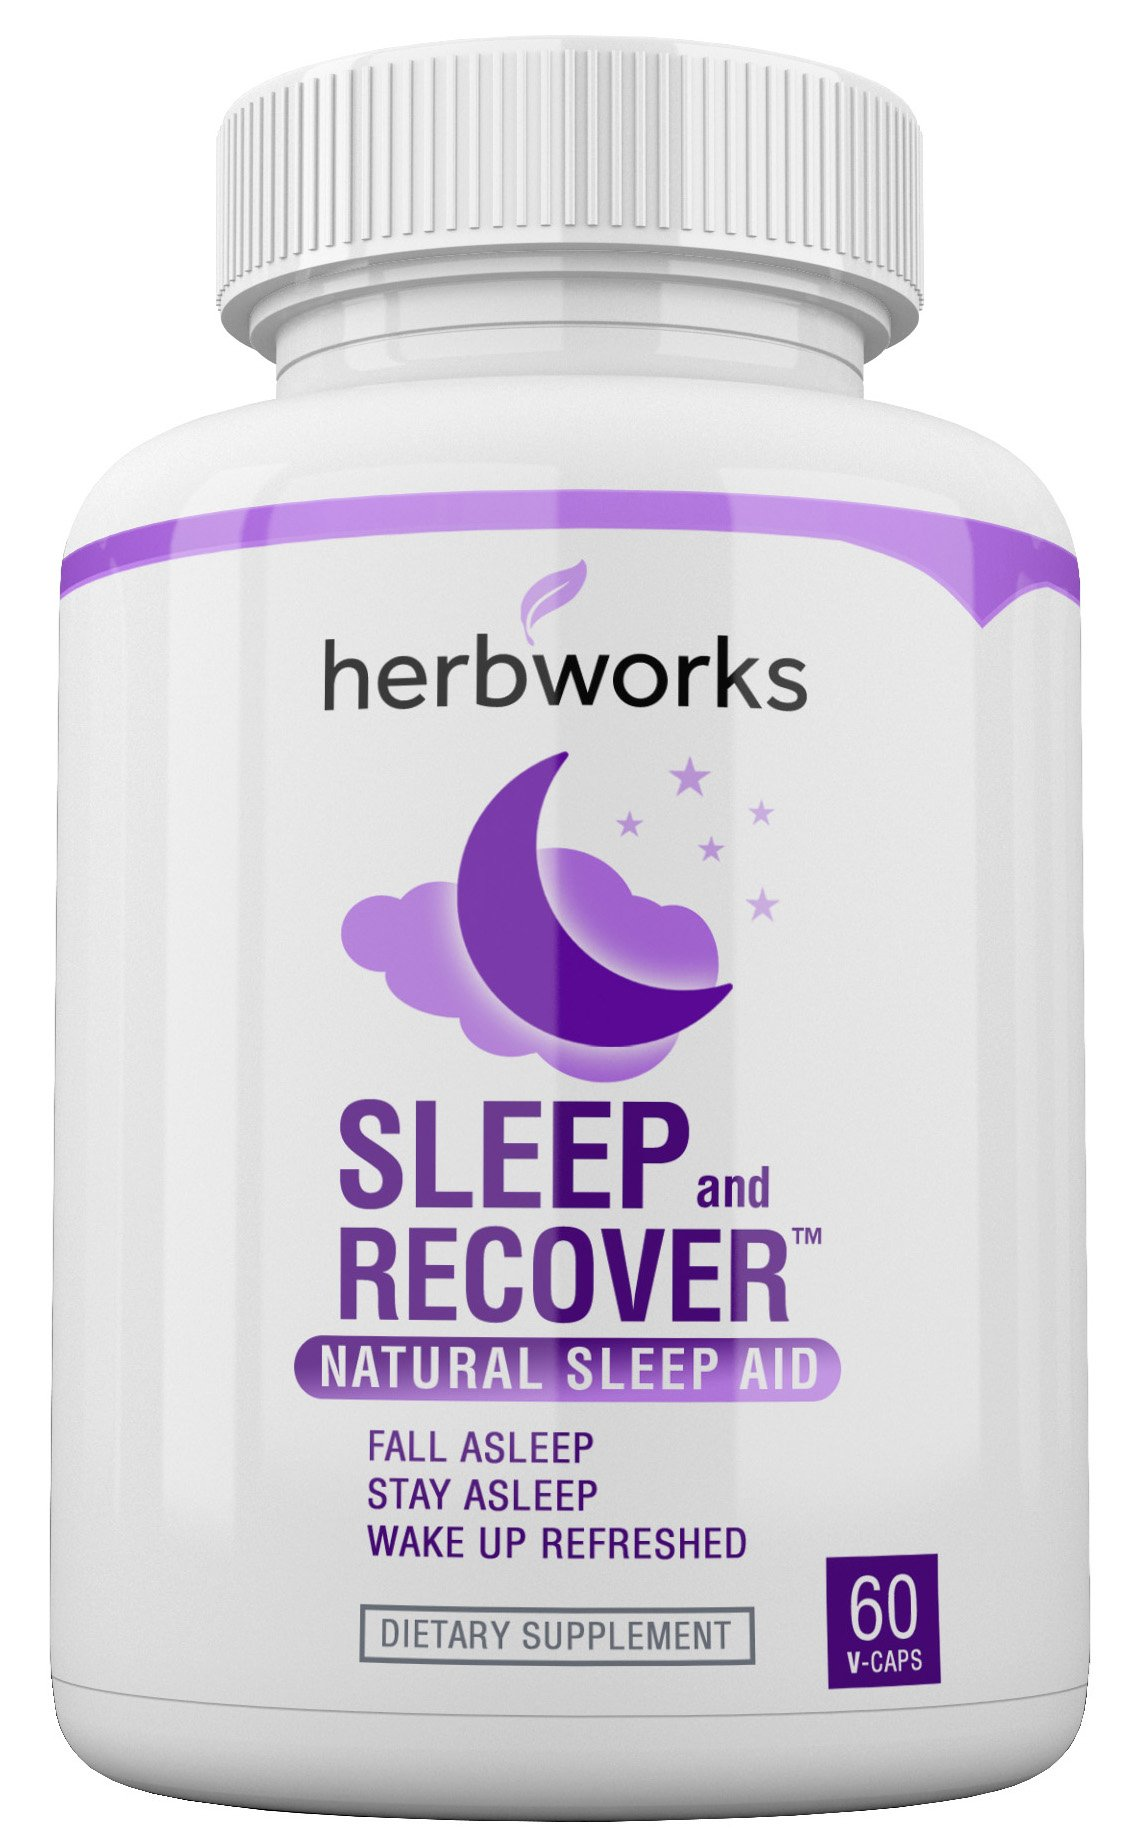 Sleep and Recover - Natural Sleep Aid - Non Habit Forming - 60 V-Capsules by HerbWorks (Image #1)